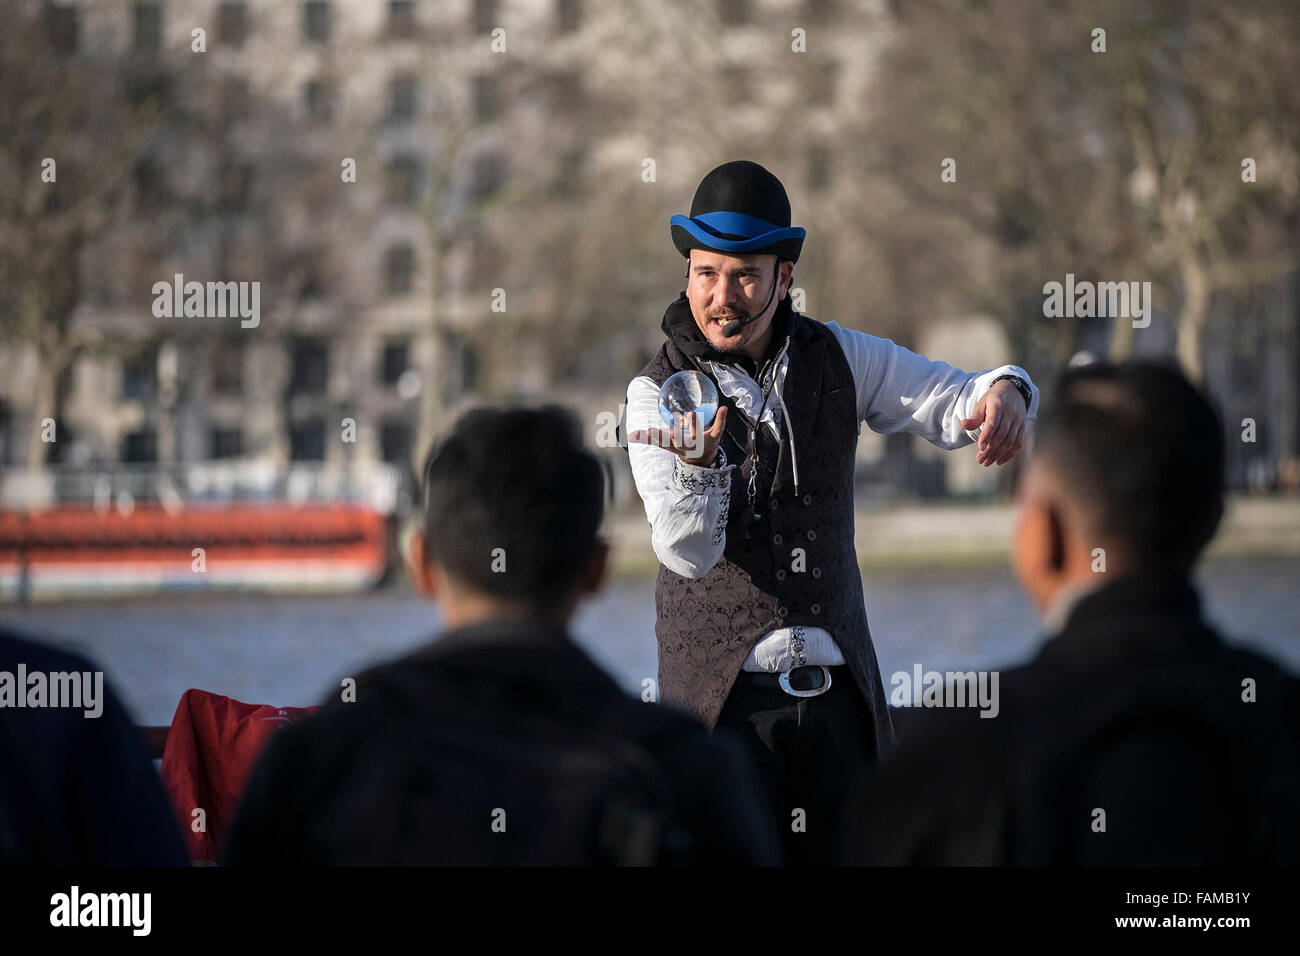 On the South Bank in London a busker entertains the public with a magic trick. - Stock Image